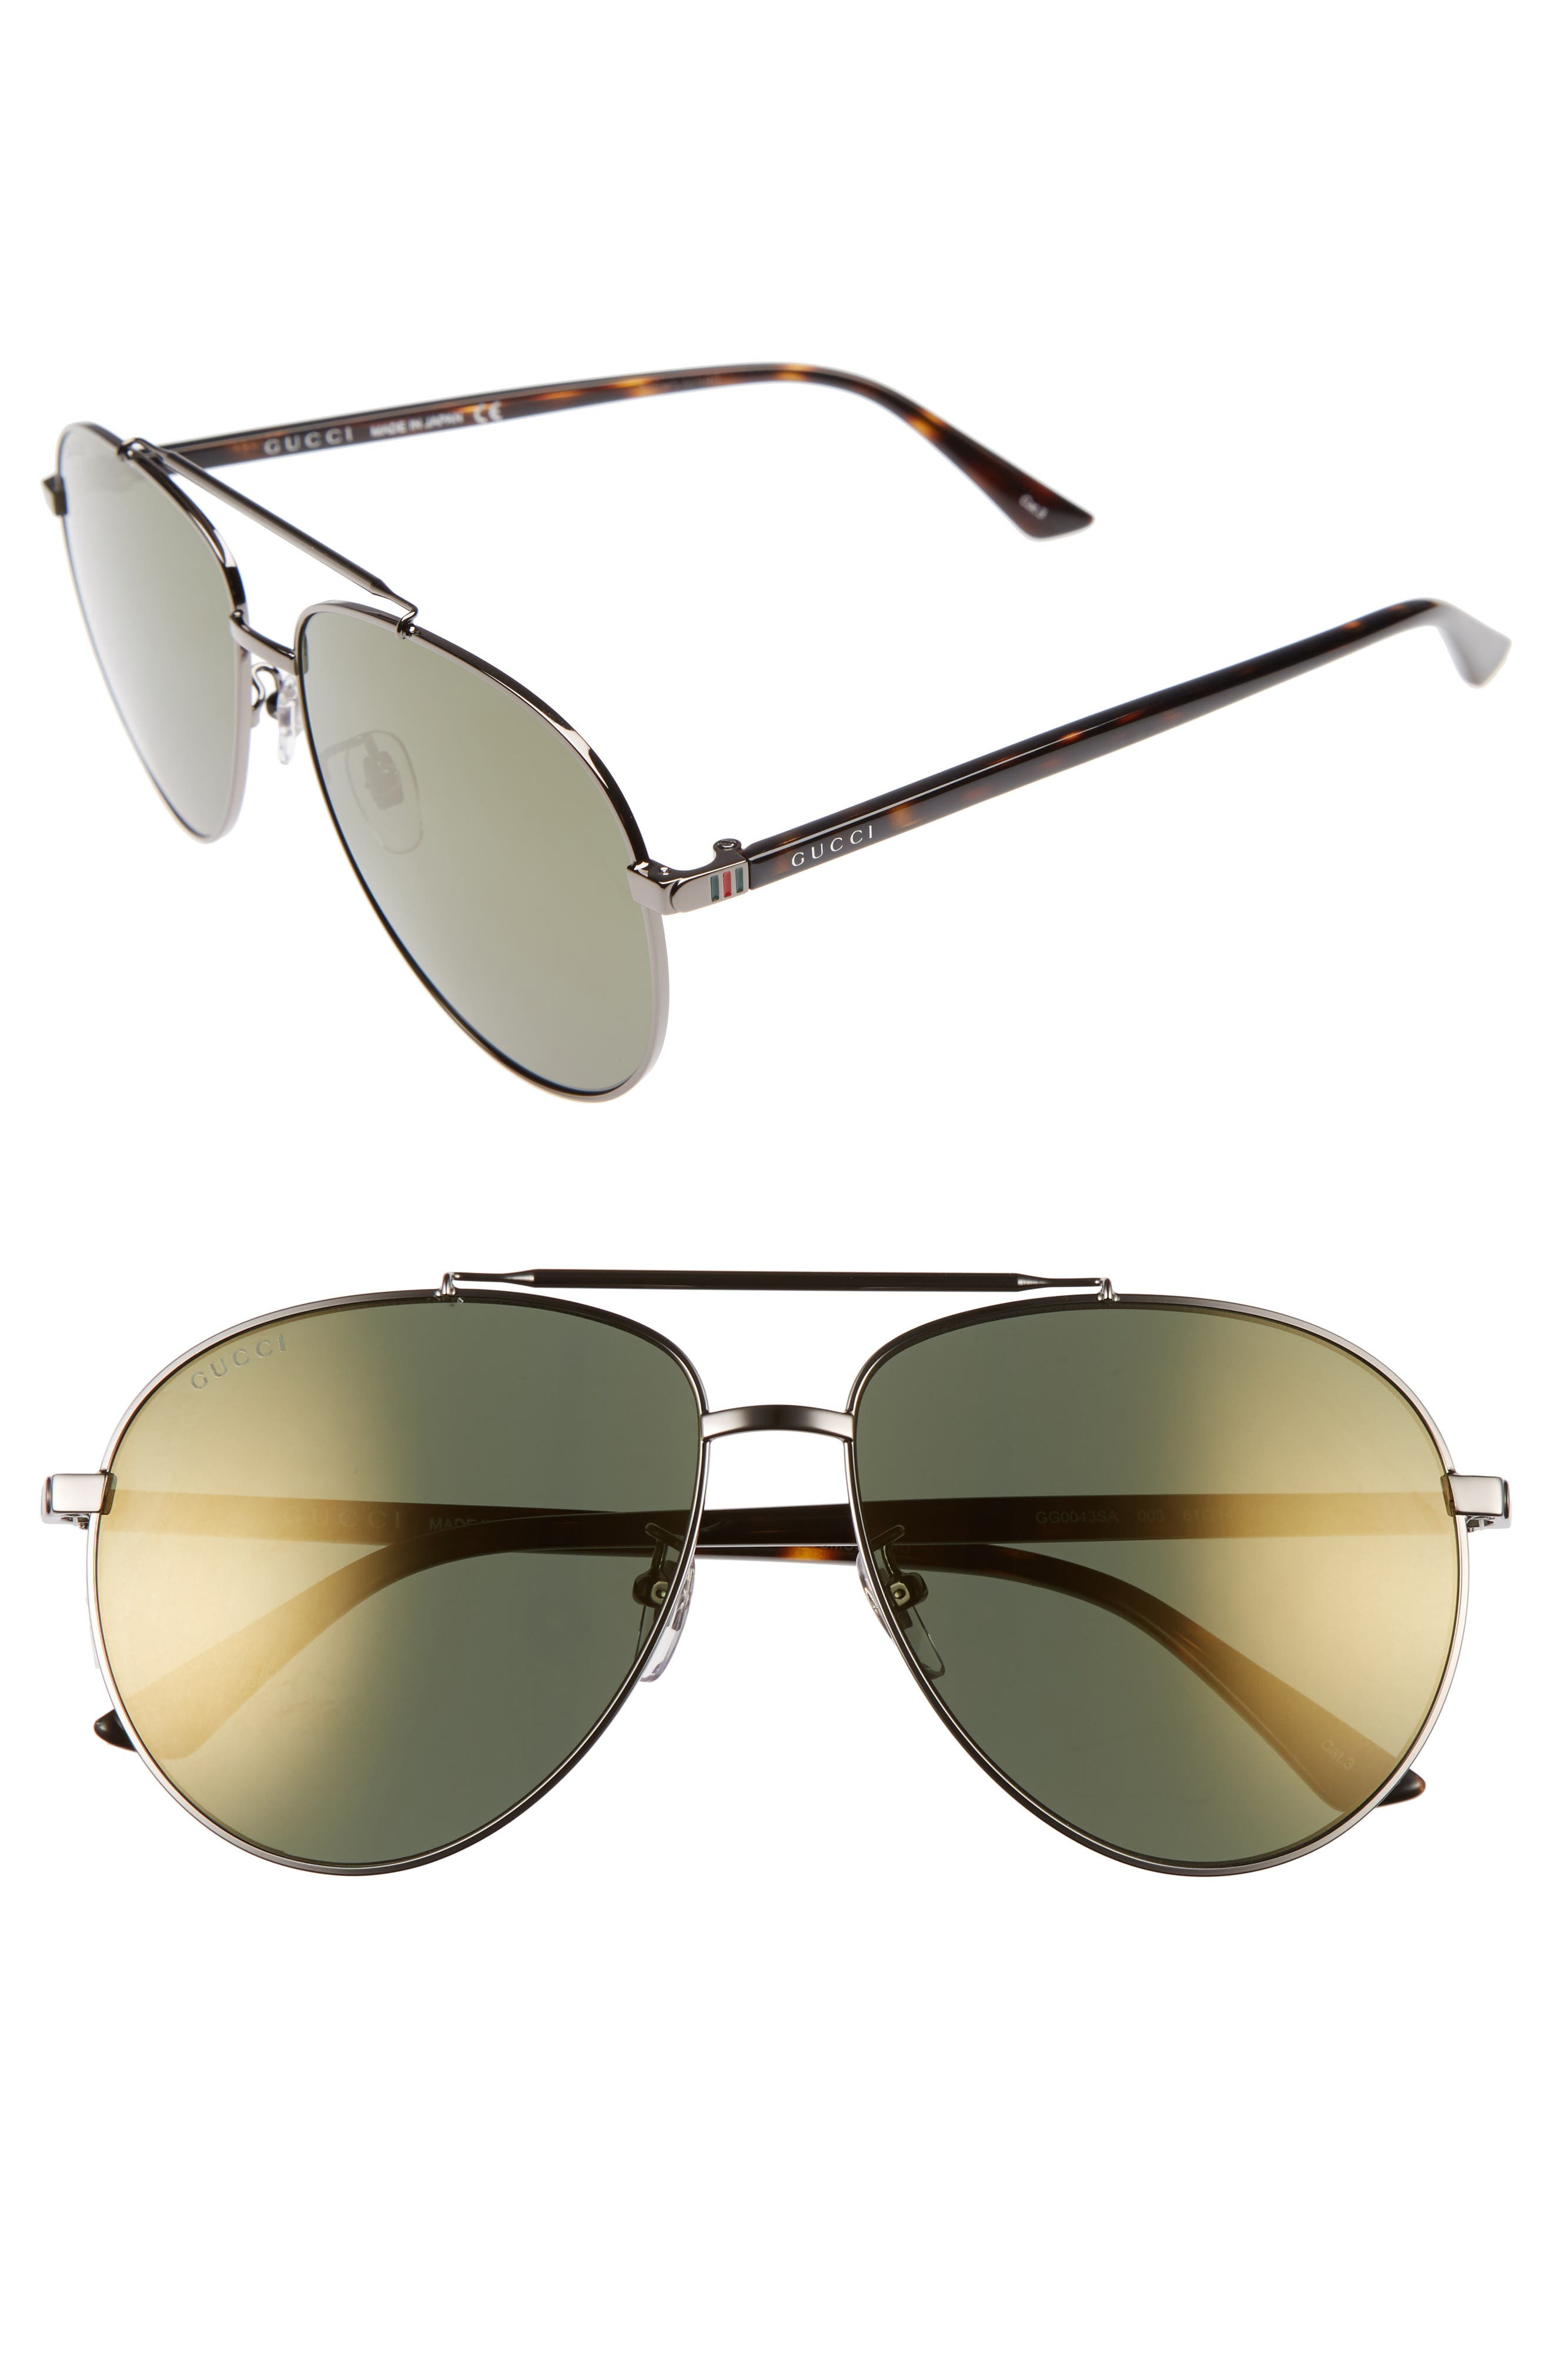 GUCCI, Retro Web 61mm Aviator Sunglasses, Alternate thumbnail 2, color, RUTHENIUM W.MIRROR GUN LENS